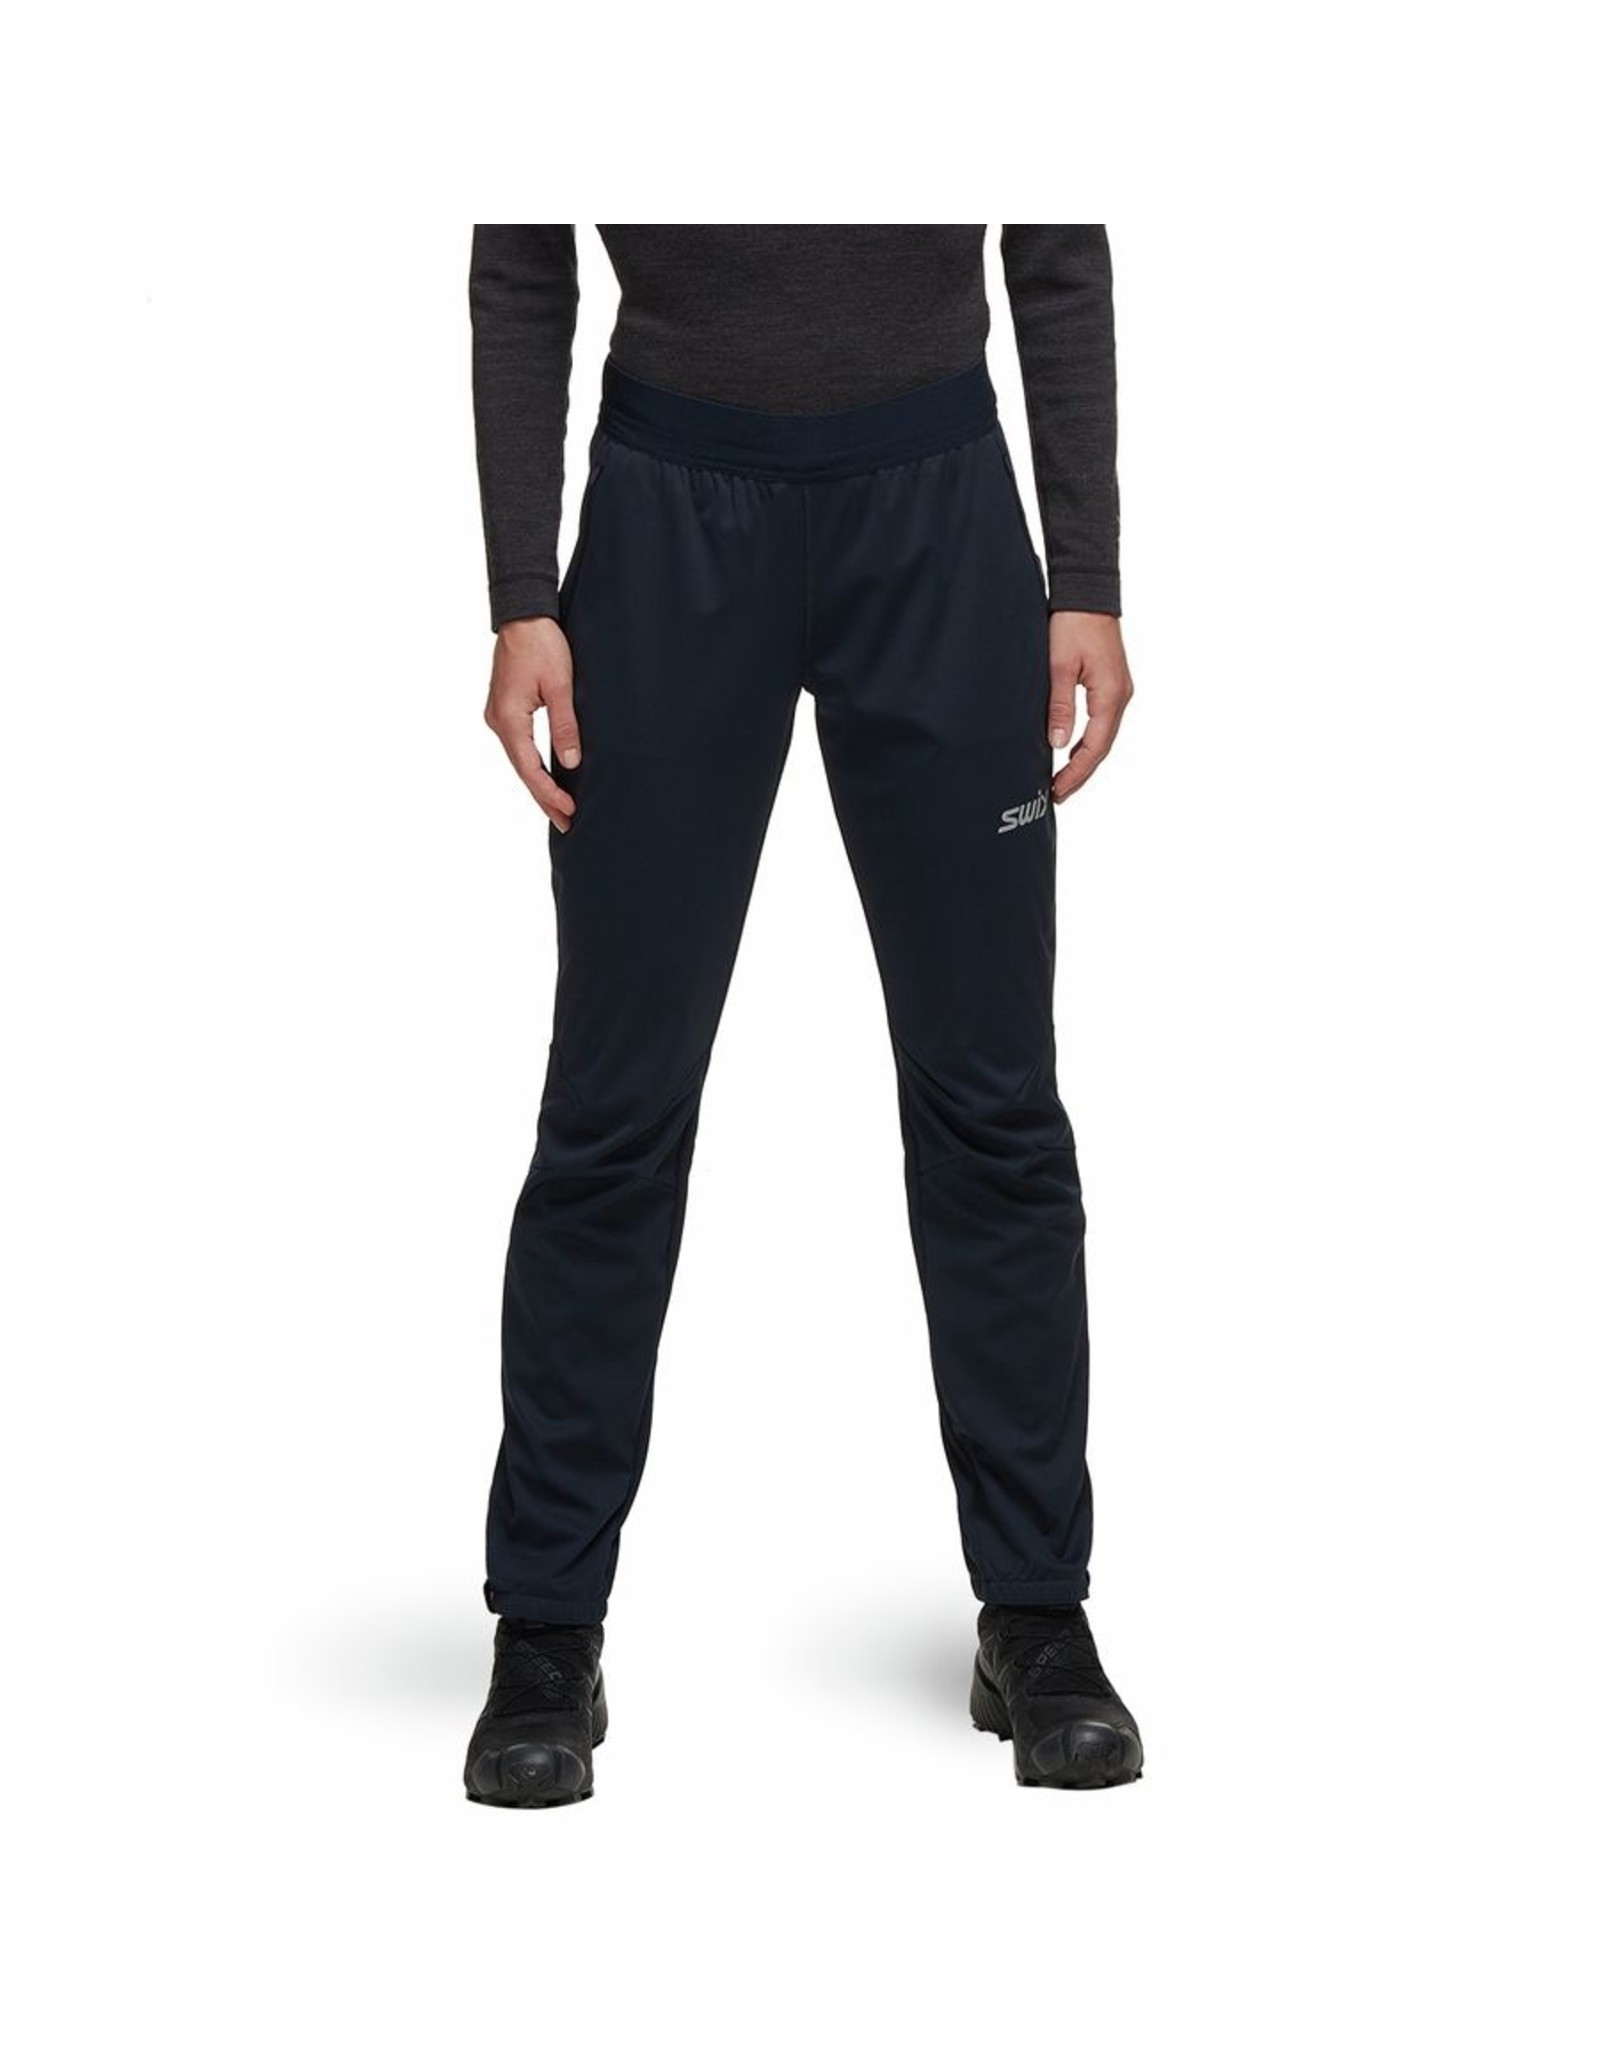 Swix Cross Pant Women